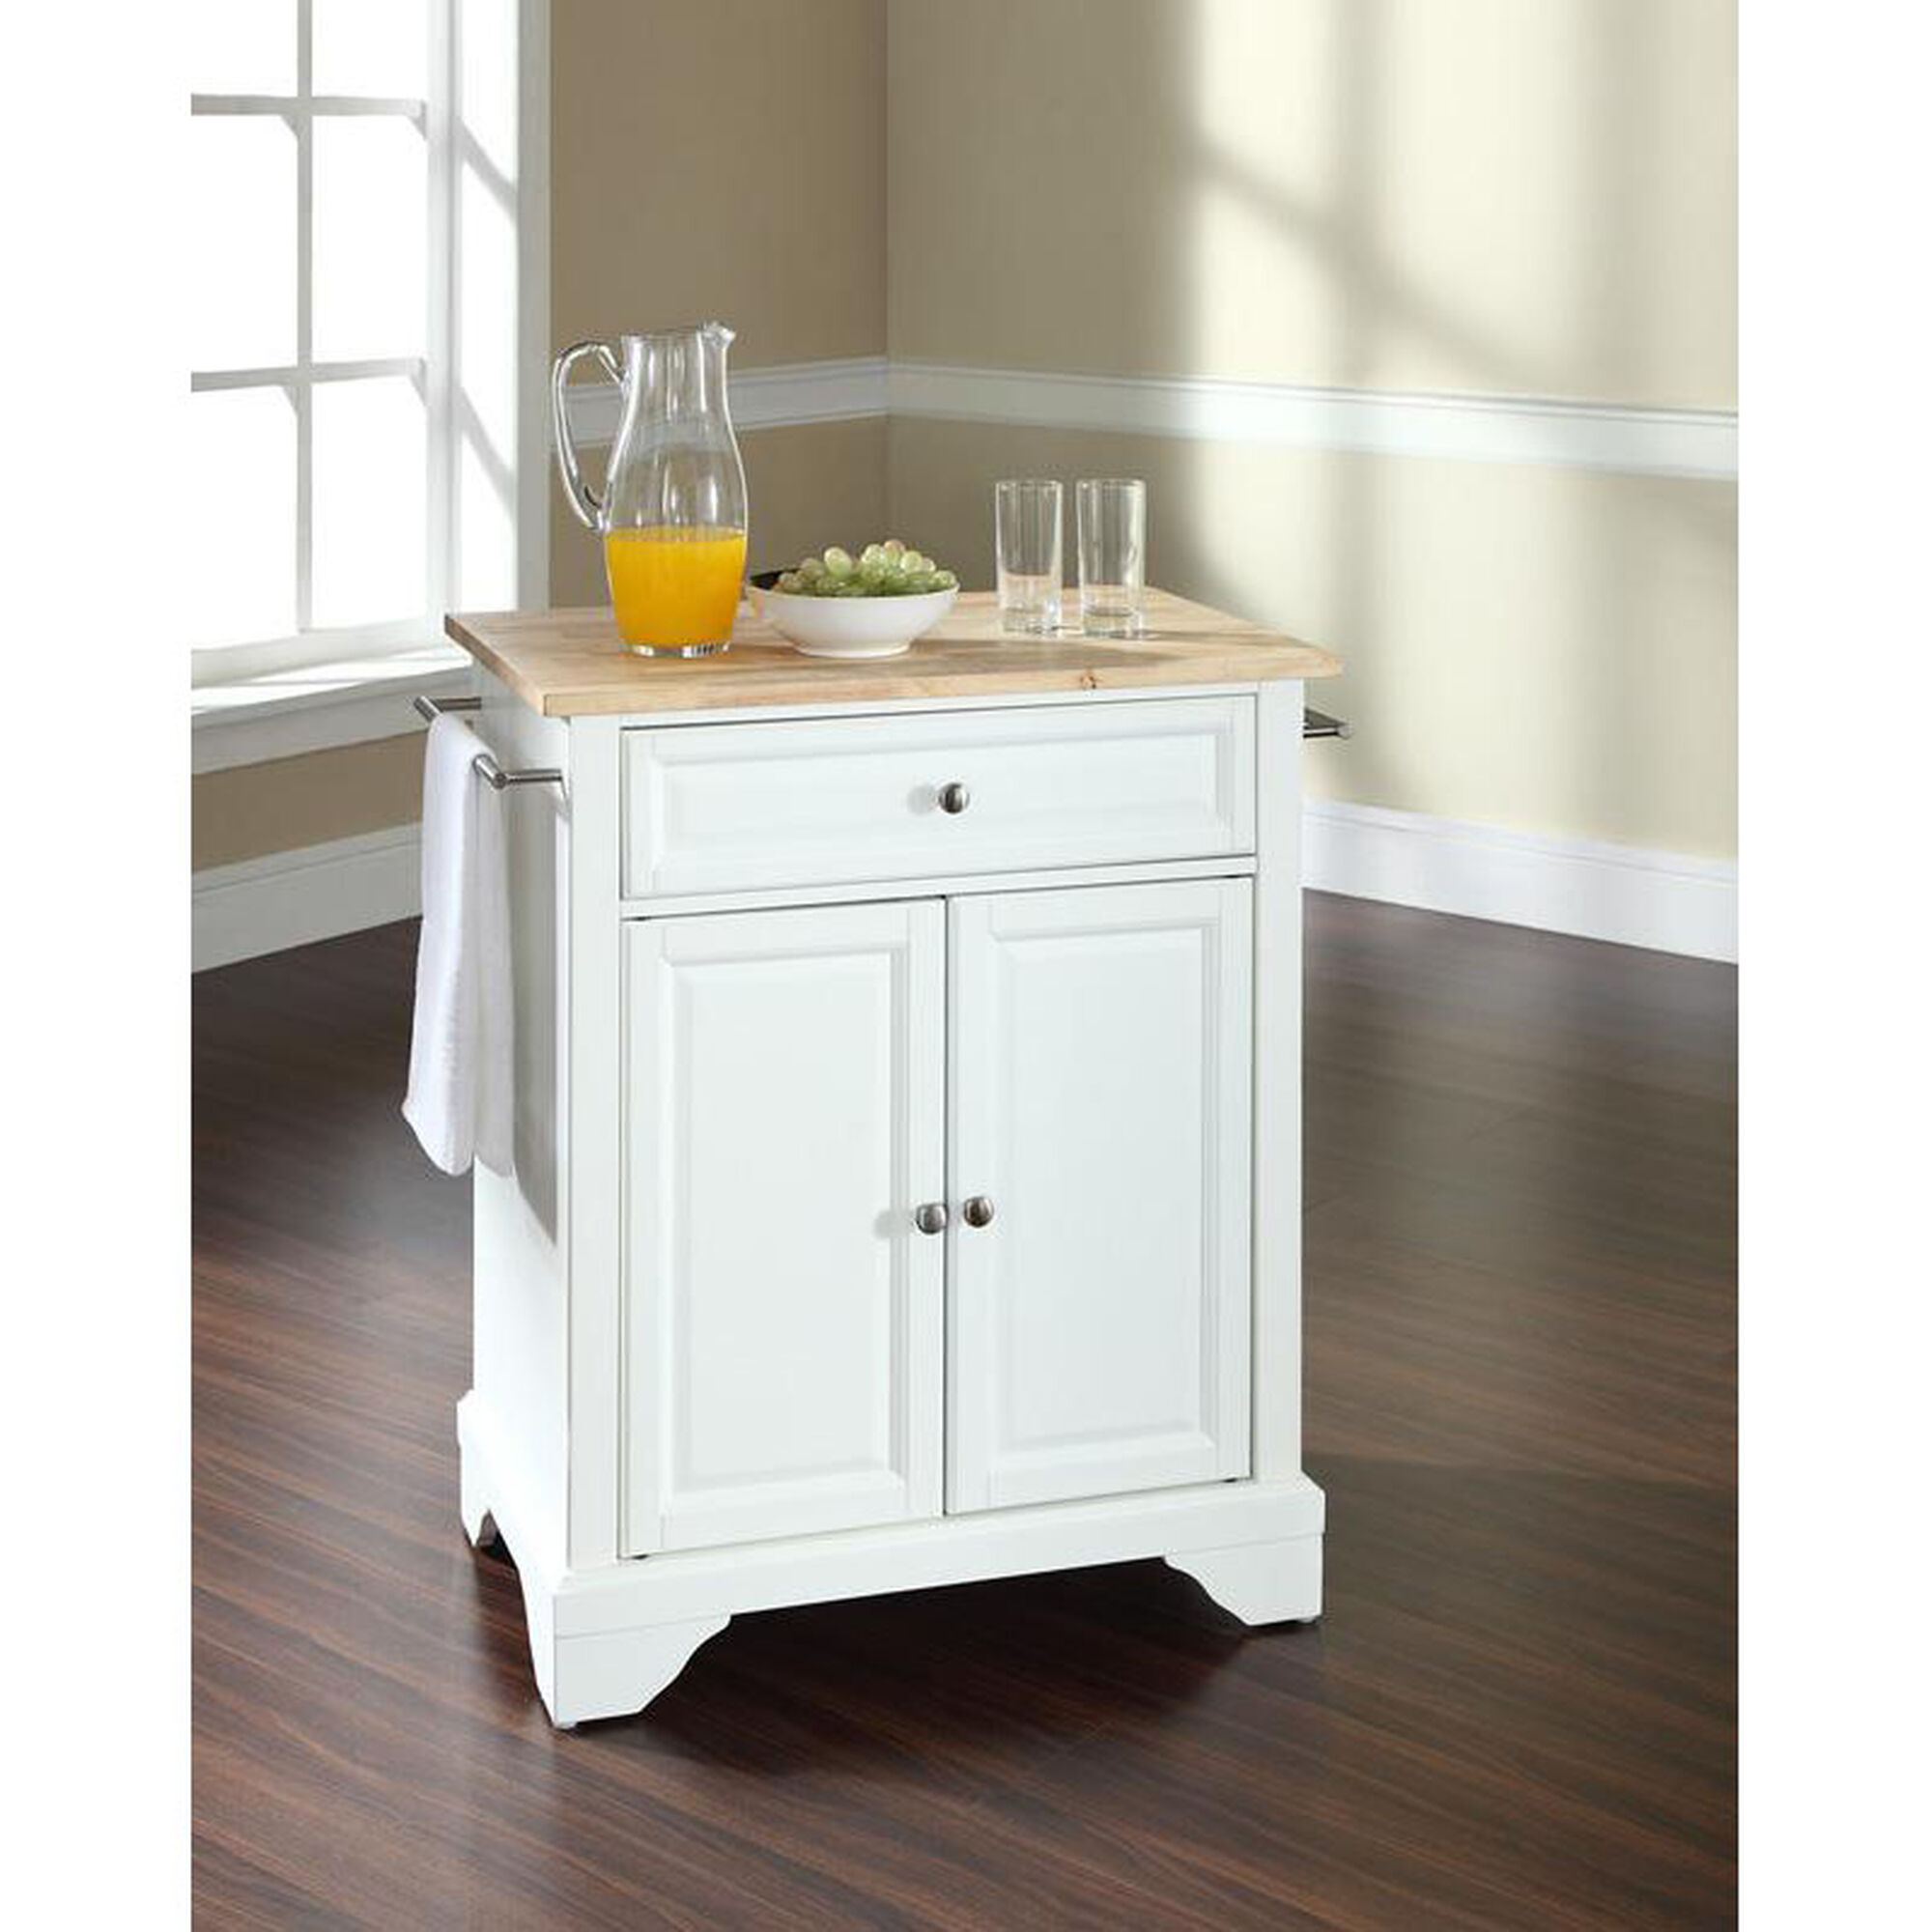 Crosley Natural Wood Top Portable Kitchen Island With